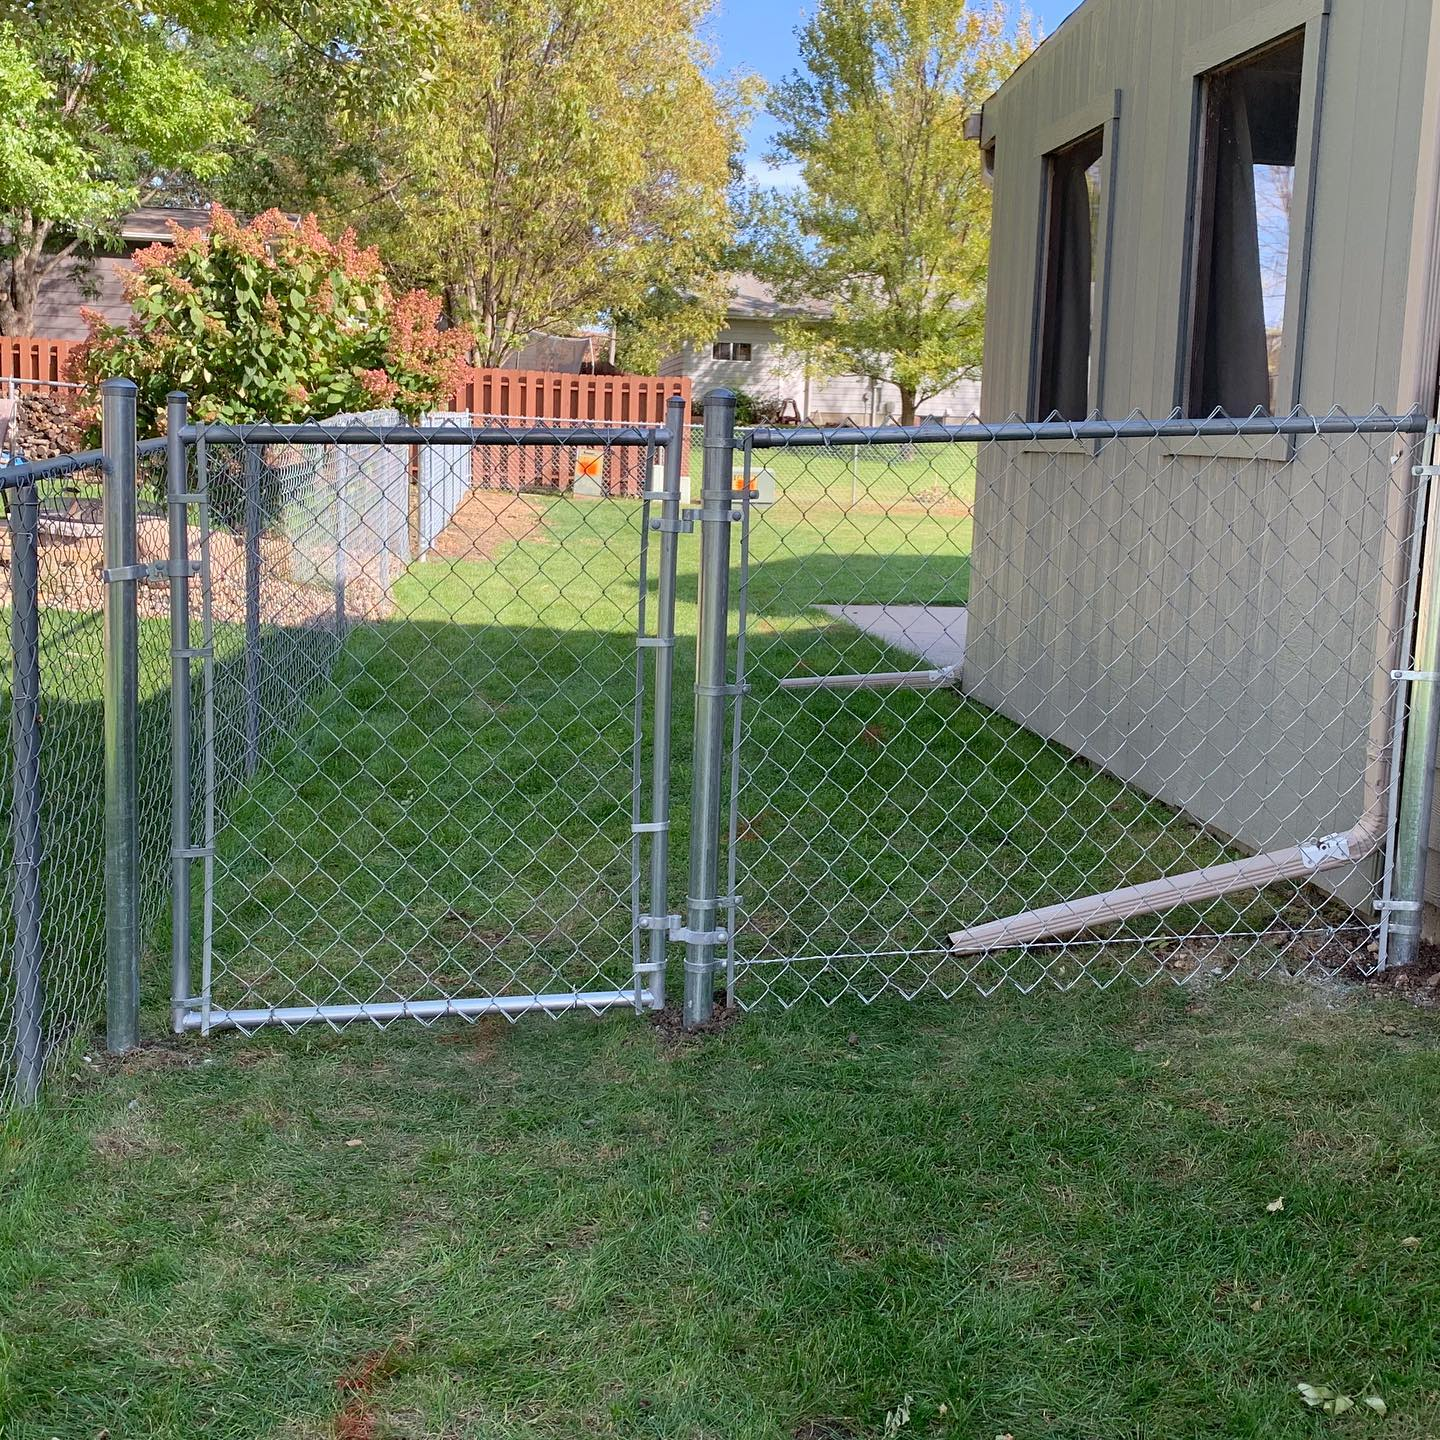 4ft Galvanized Chainlink Walk Gate